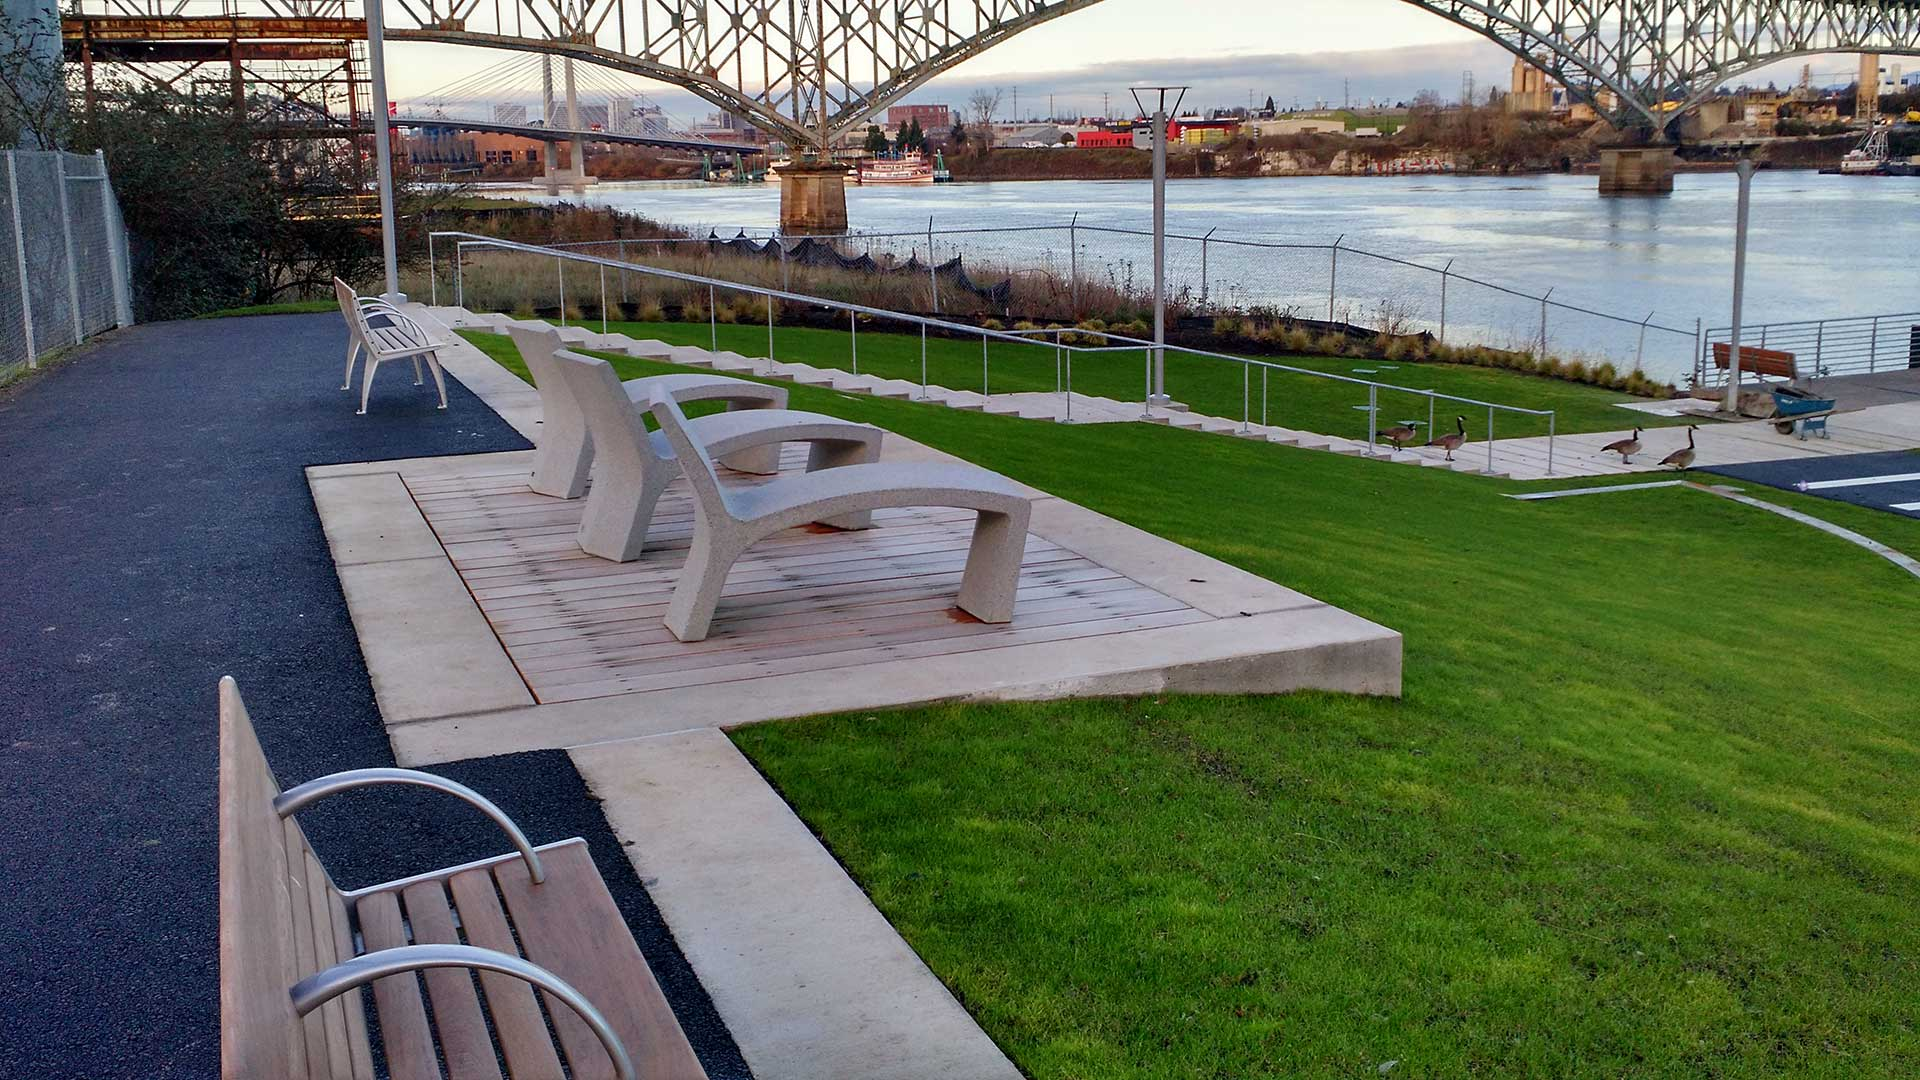 South Waterfront Greenway